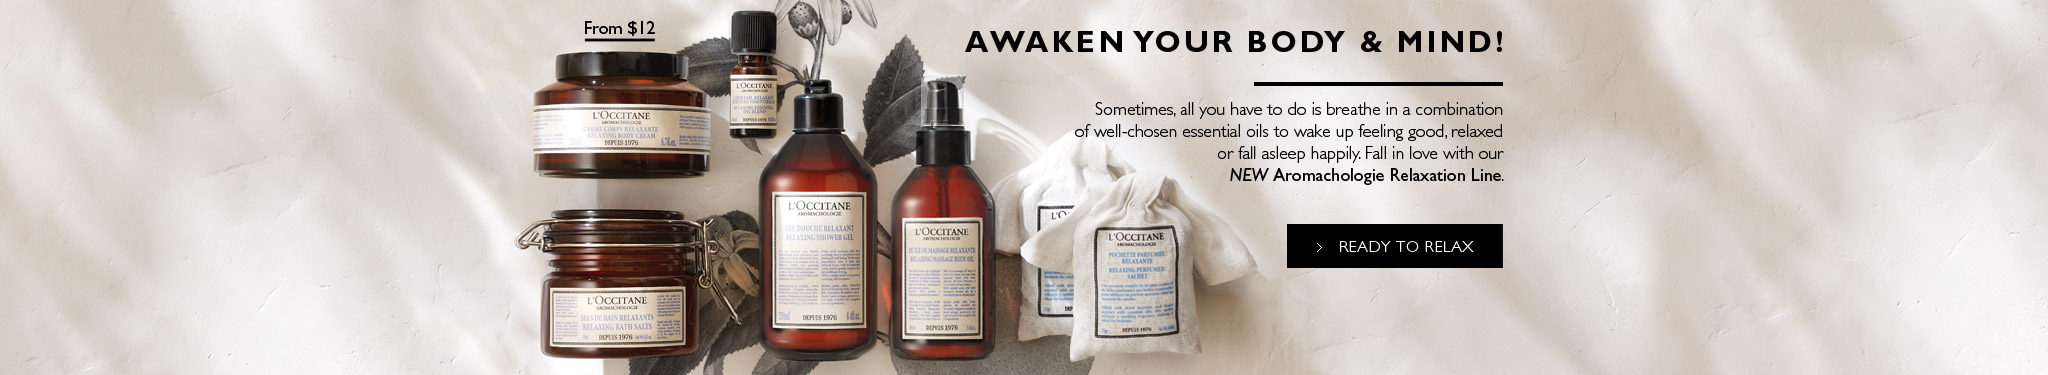 Awaken your Body & Mind ! Sometimes, all you have to do is breathe in a combination of well-chosen essential oils to wake up feeling good, relaxed or fall asleep happily.Fall in love with our NEW Aromachologie Relaxation Line.